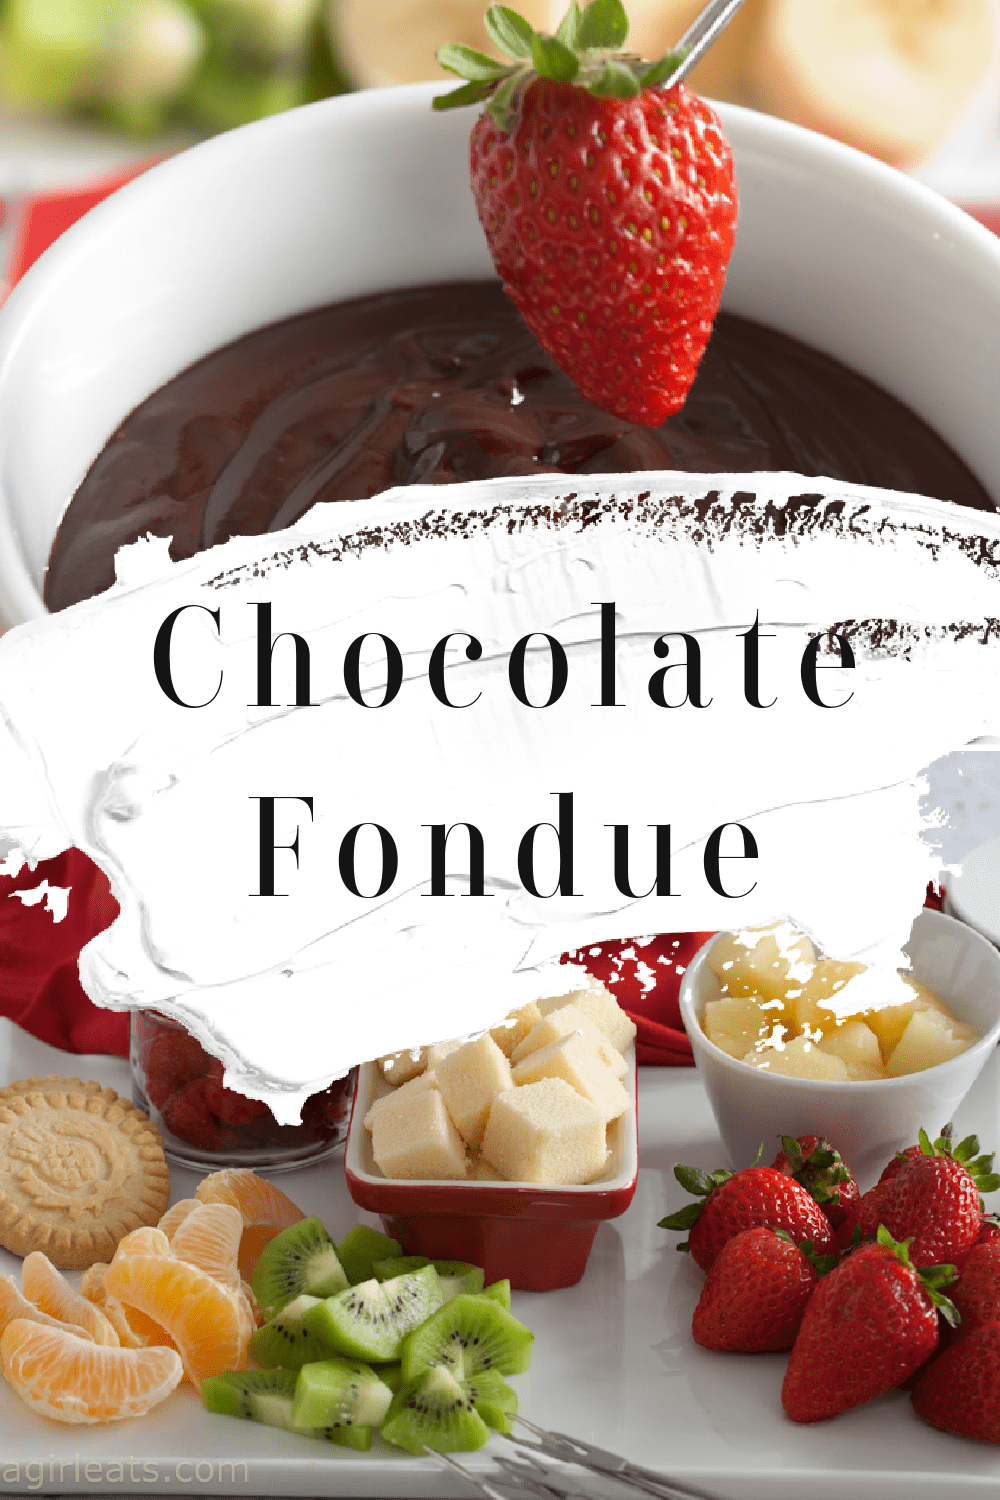 This quick and easy chocolate fondue recipe is perfect for any special occasion! Serve with fresh fruit and pound cake!